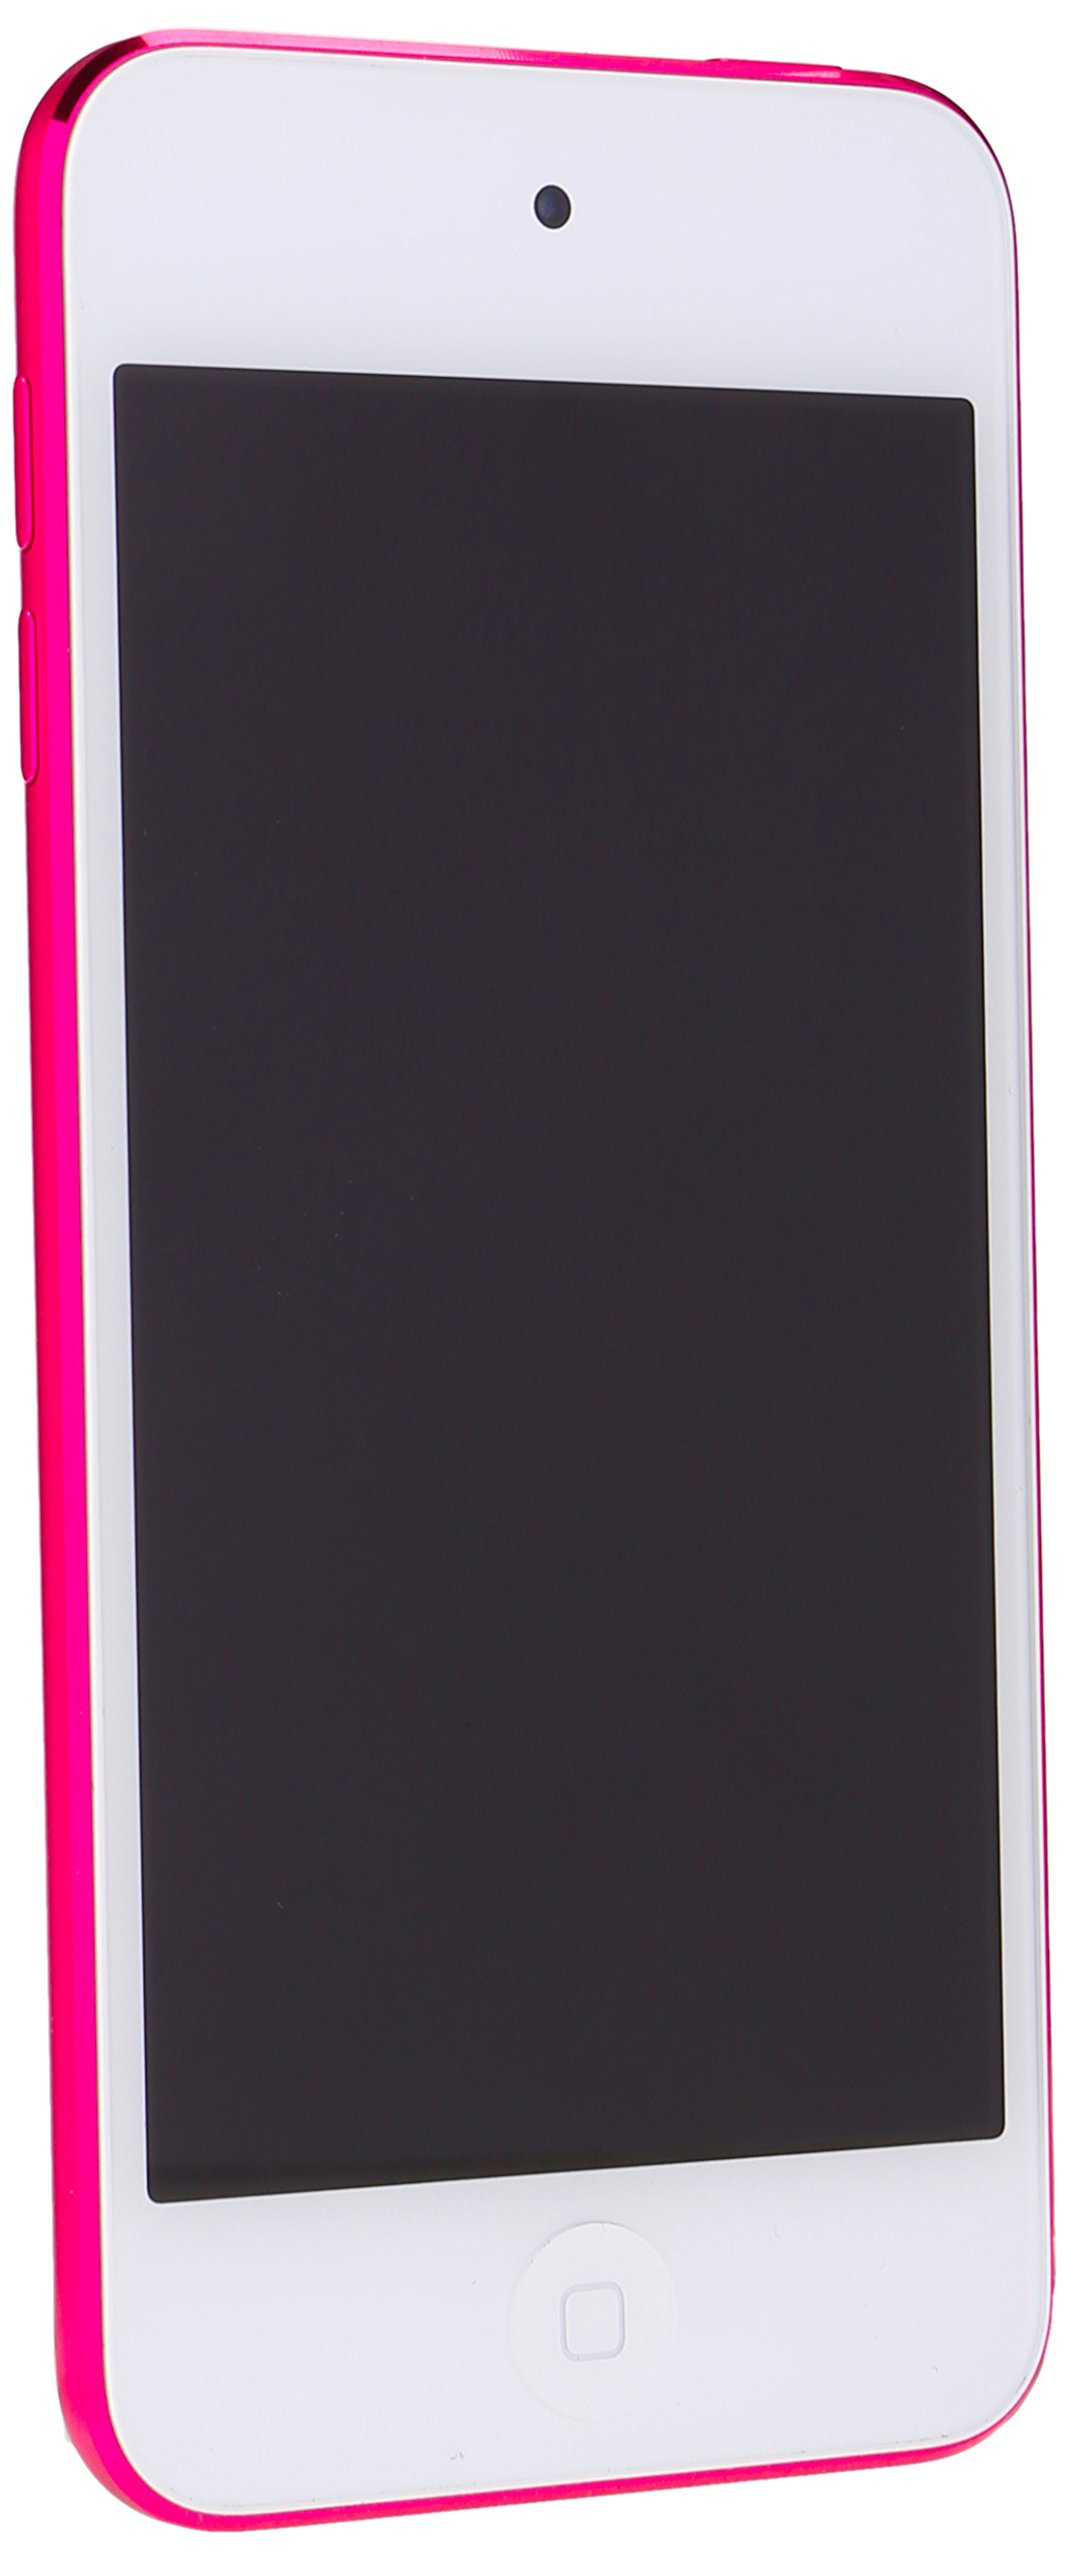 Apple iPod Touch, 16GB, Pink (6th Generation)